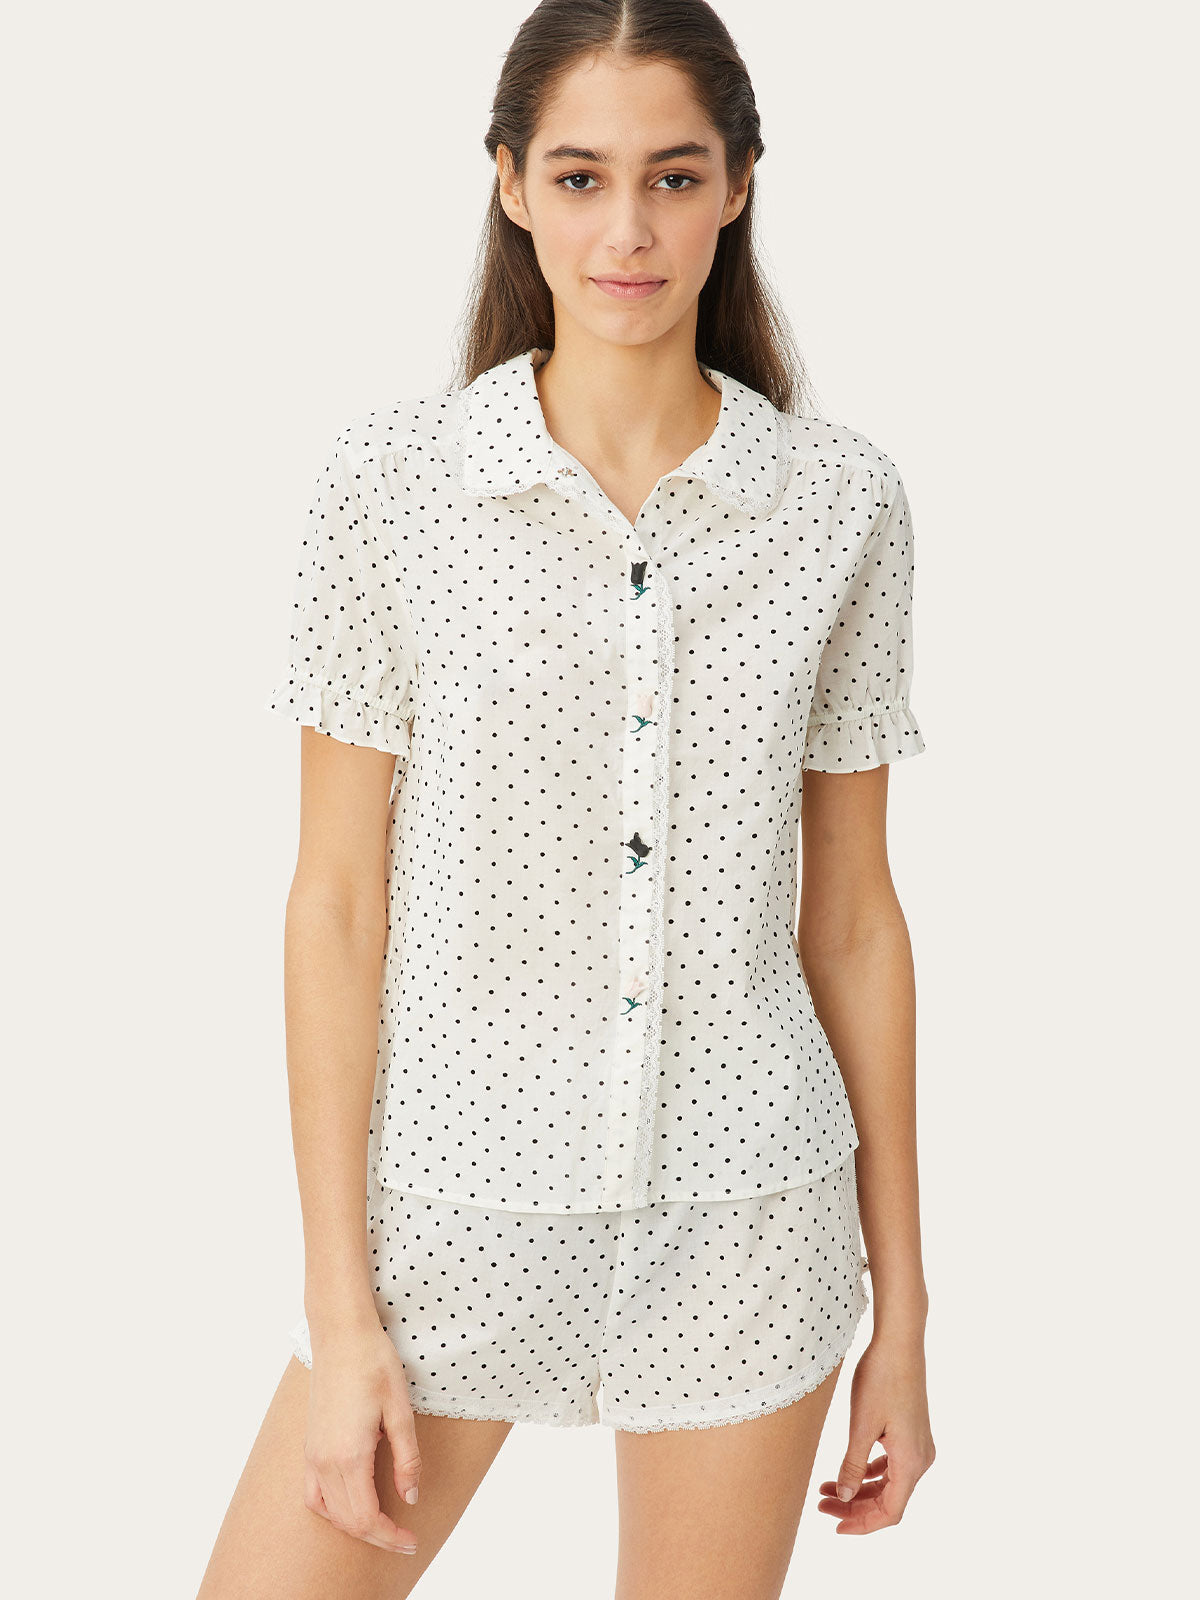 Lovie Top in Primrose Dot By Morgan Lane